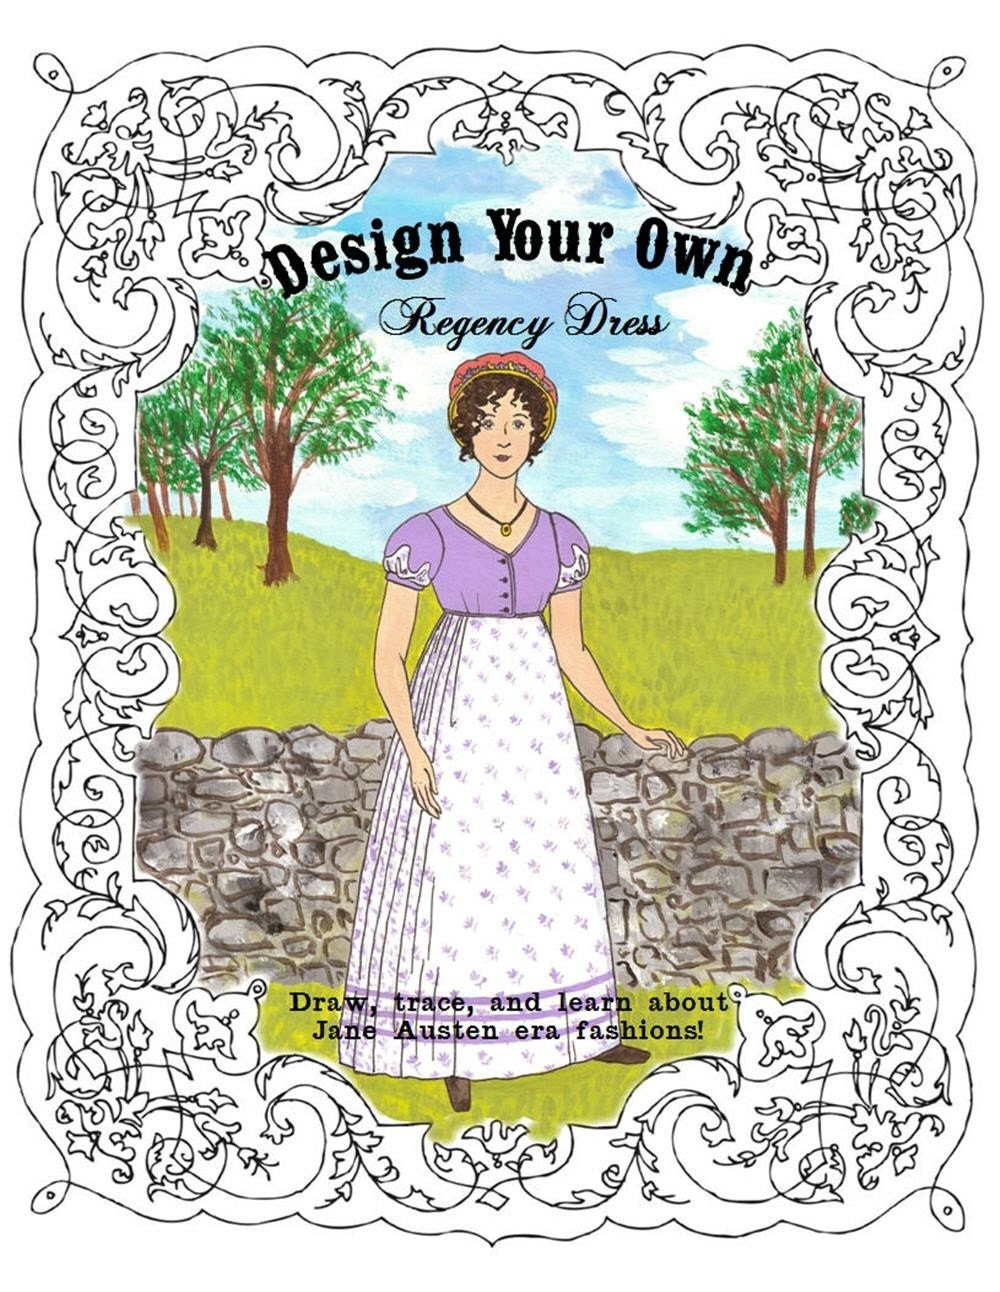 Design Your Own Regency Dress Kit